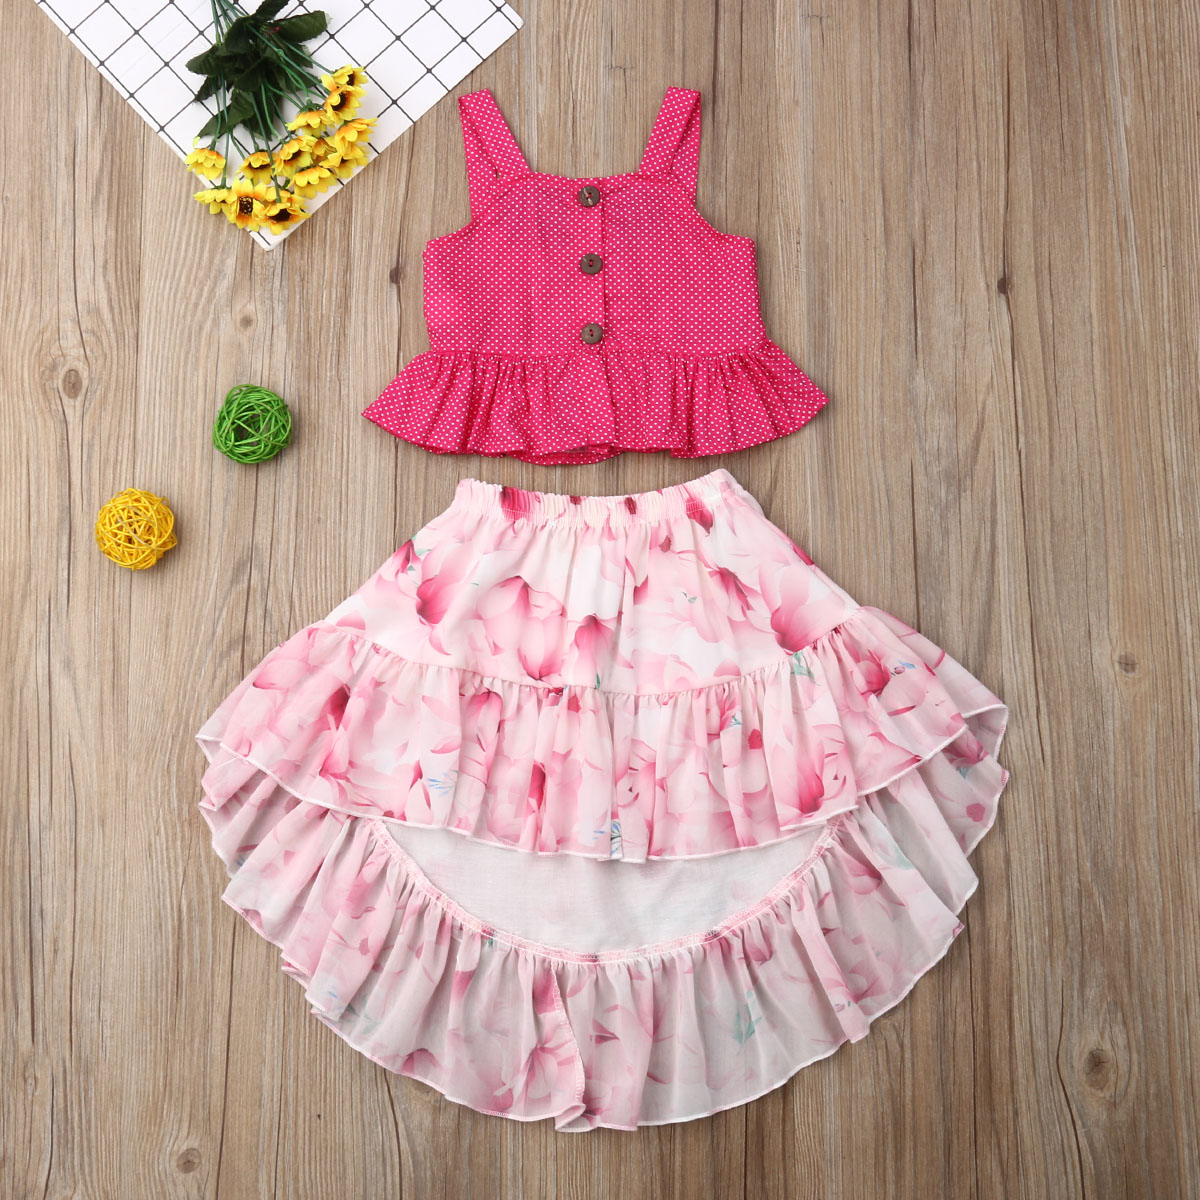 Emmababy Summer Toddler Baby Girl Clothes Solid Color Strap Ruffle Tops Flower Print Skirt 2Pcs Outfits Clothes